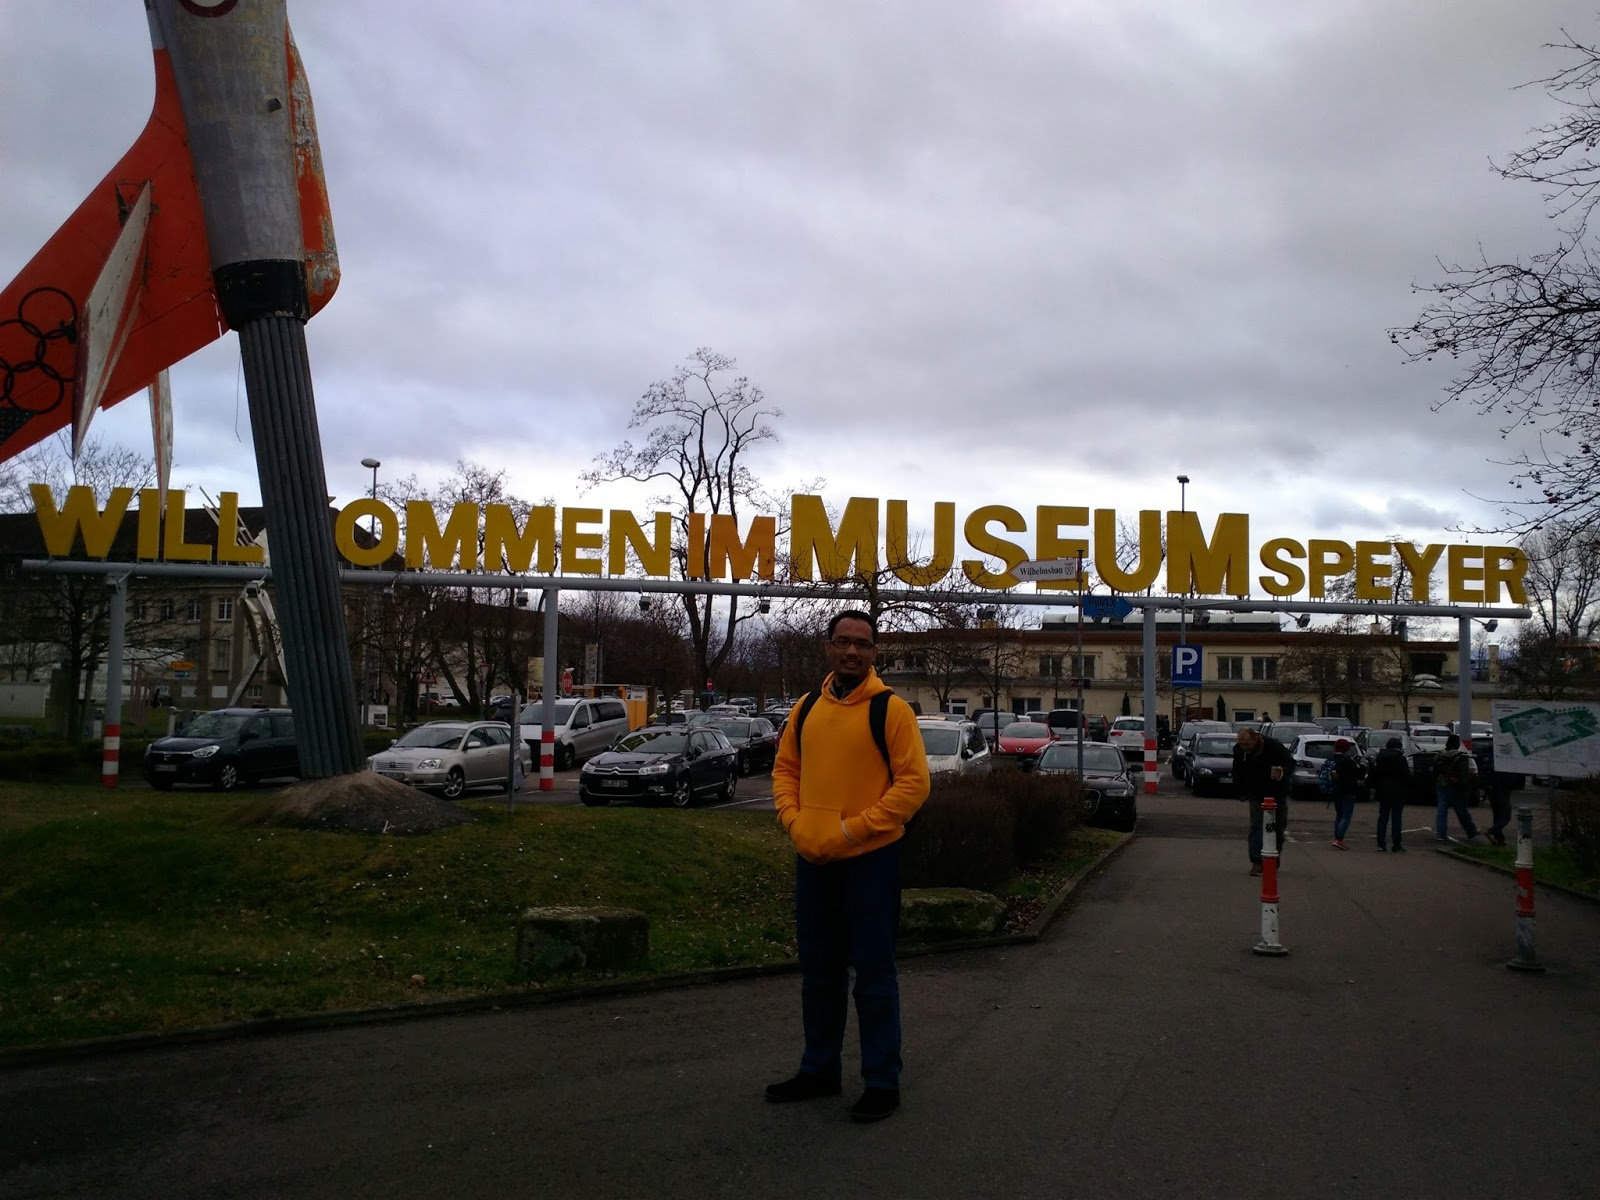 musem-speyer-germany